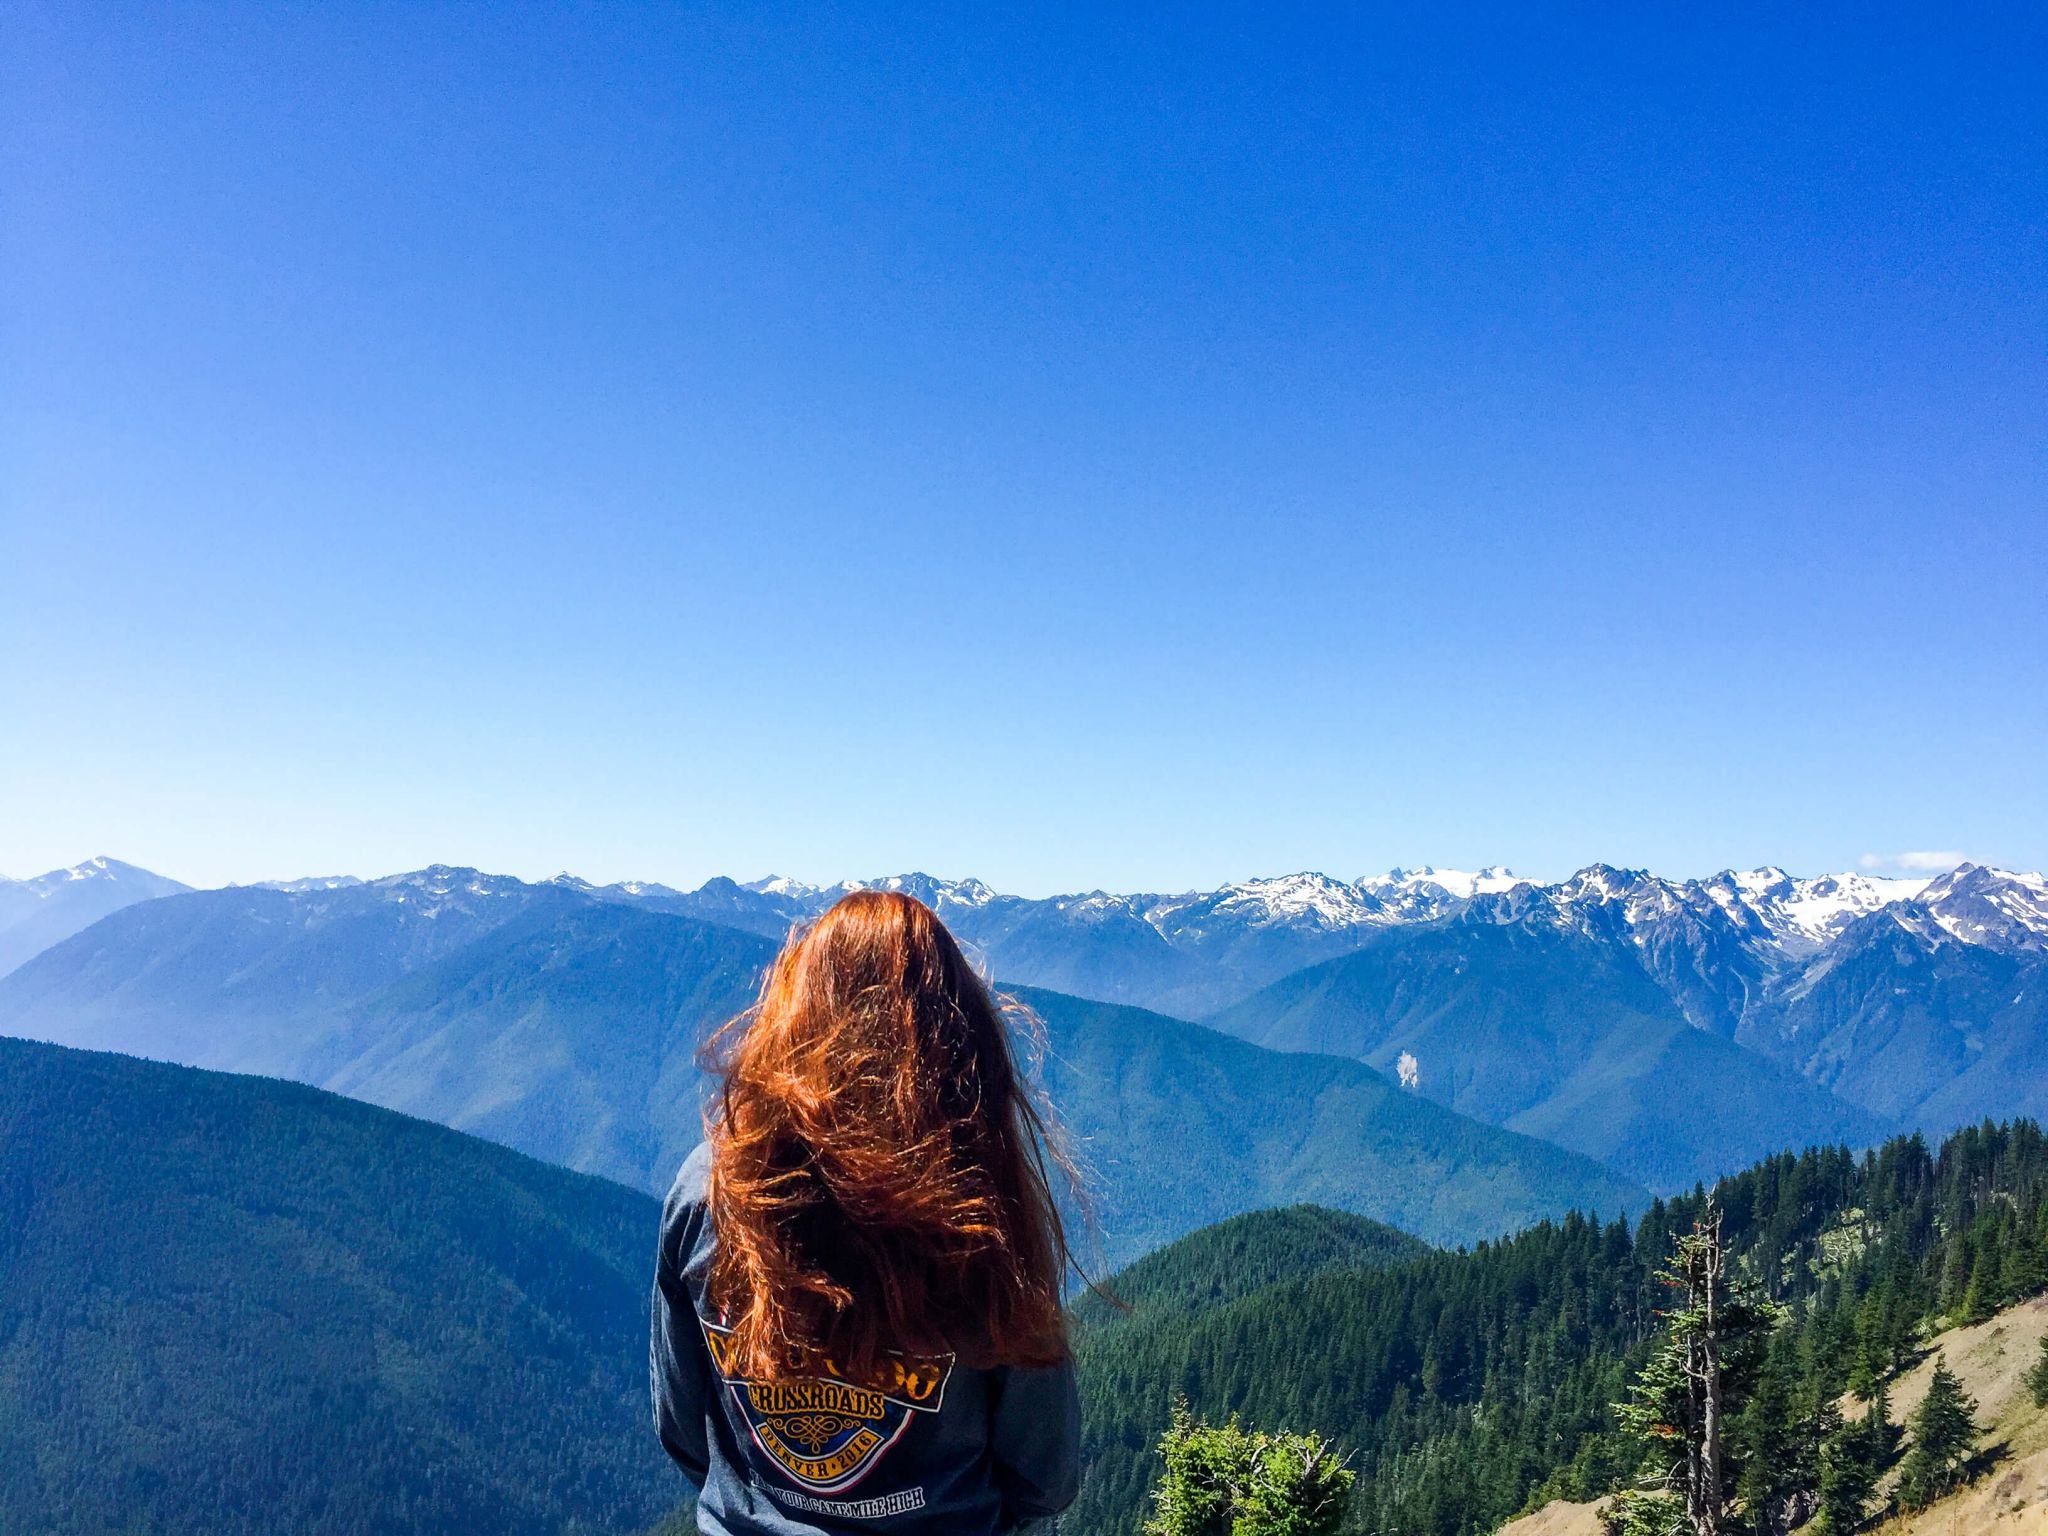 problem page edition 17 - woman with long red hair staring out at the mountains under a bright blue sky